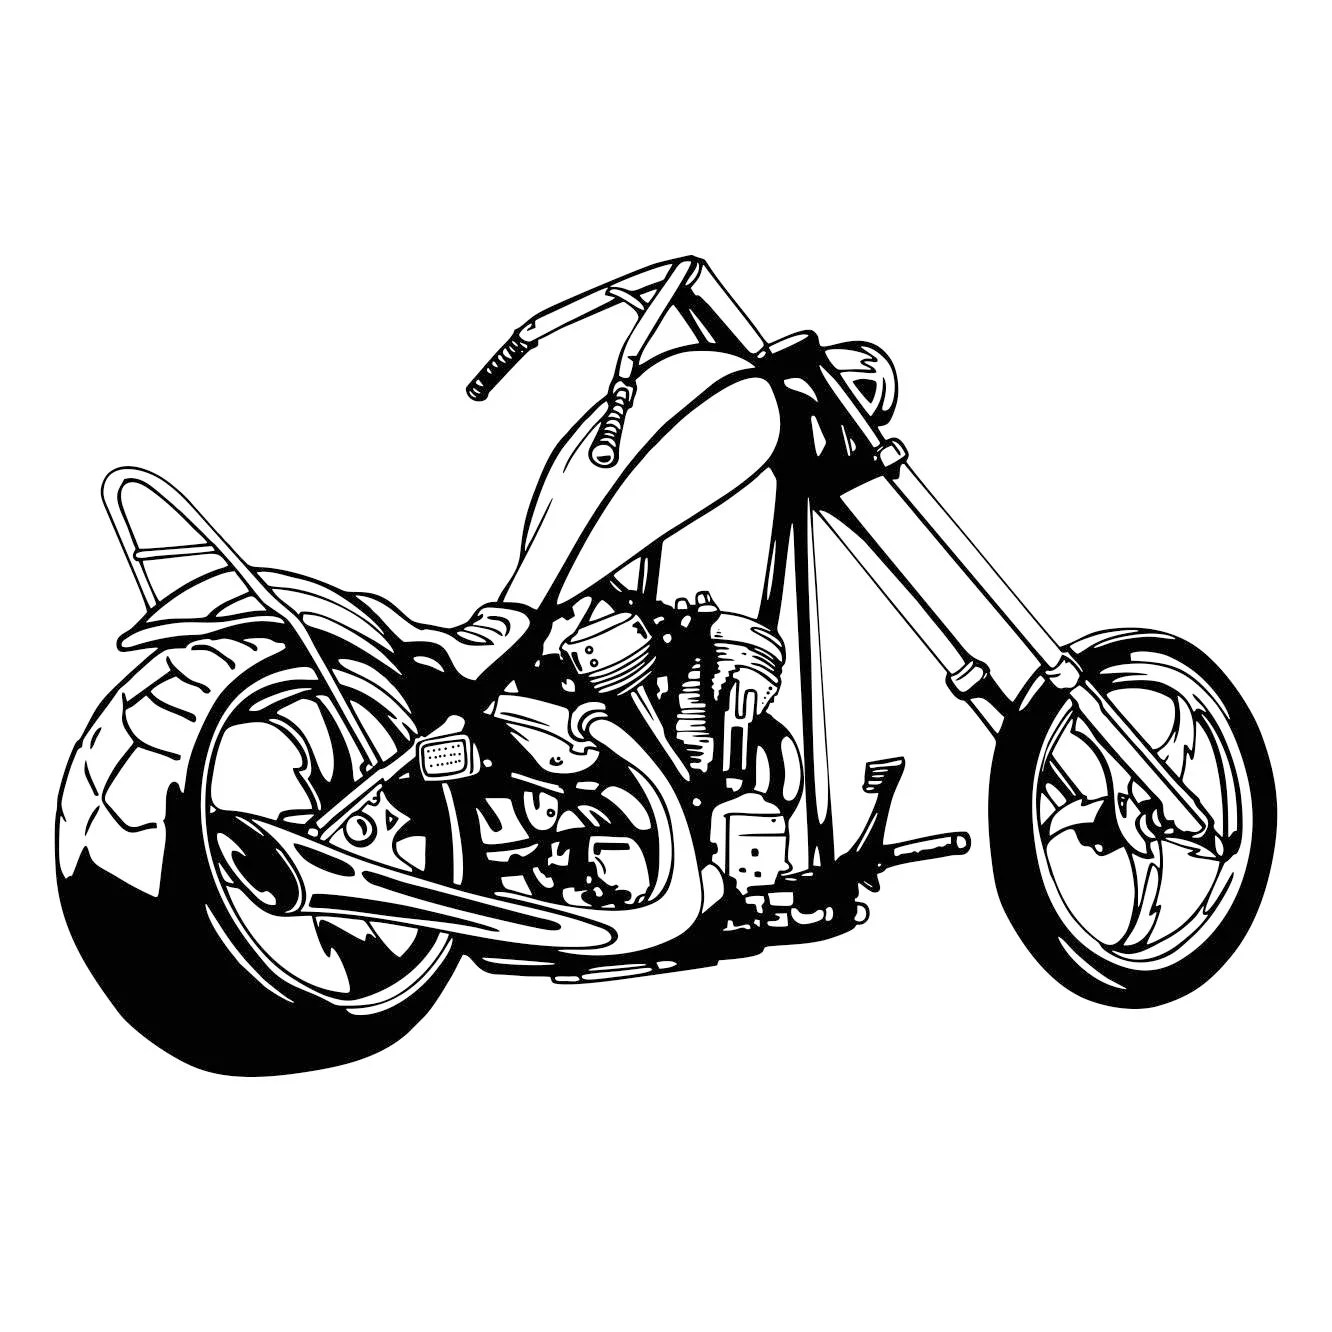 Chopper Motorcycle 2 Graphics SVG Dxf EPS Png Cdr Ai Pdf